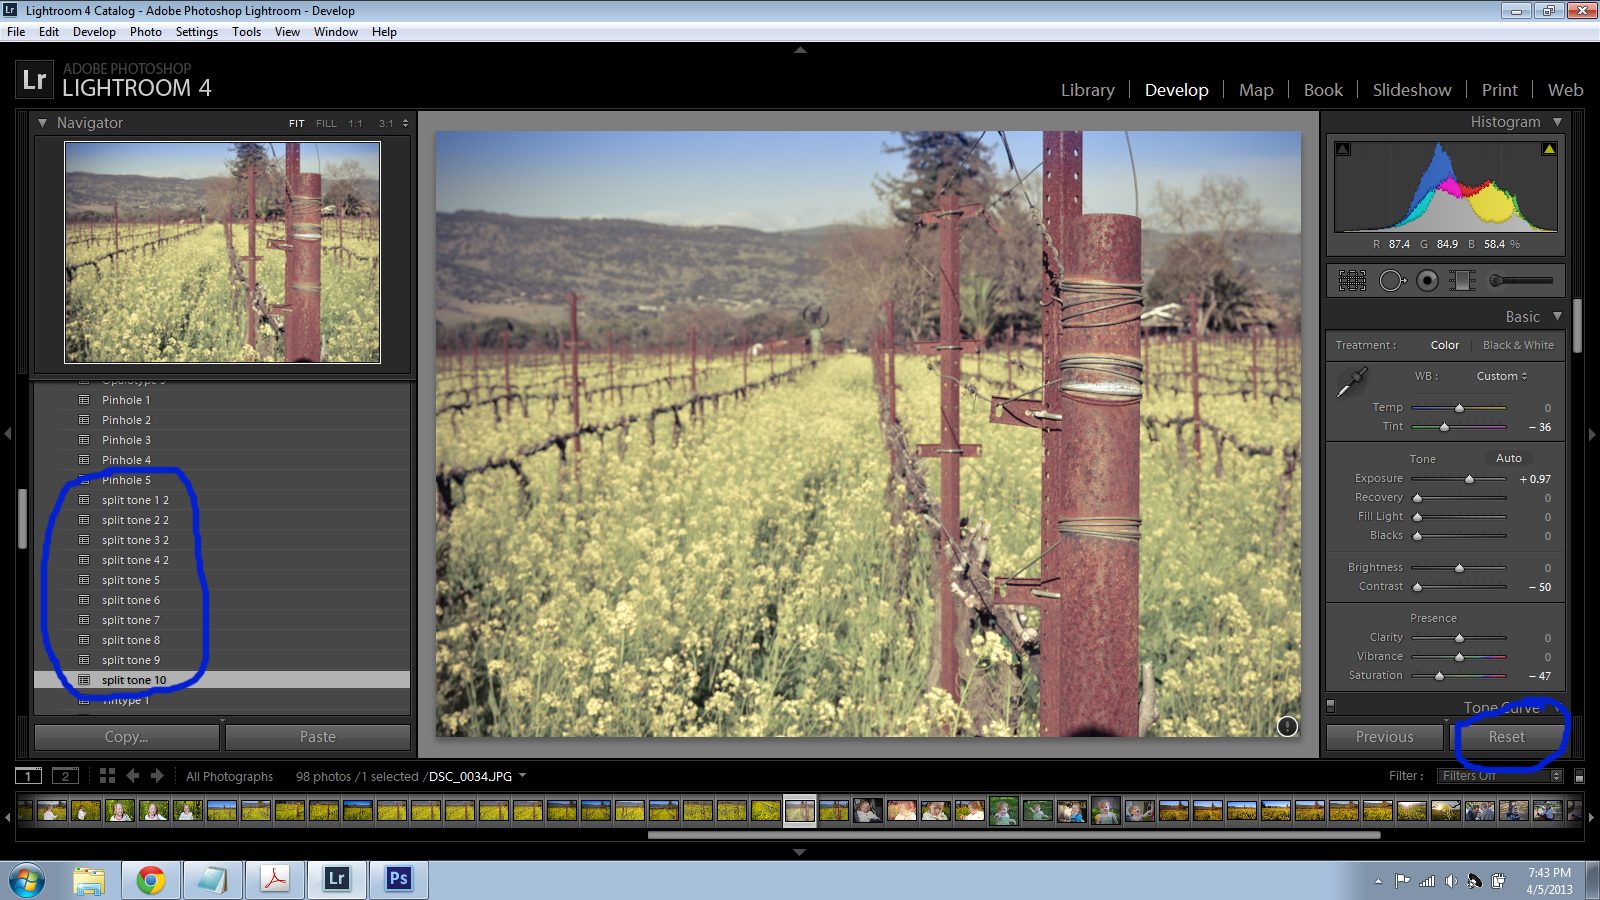 Presets Installed in Lightroom